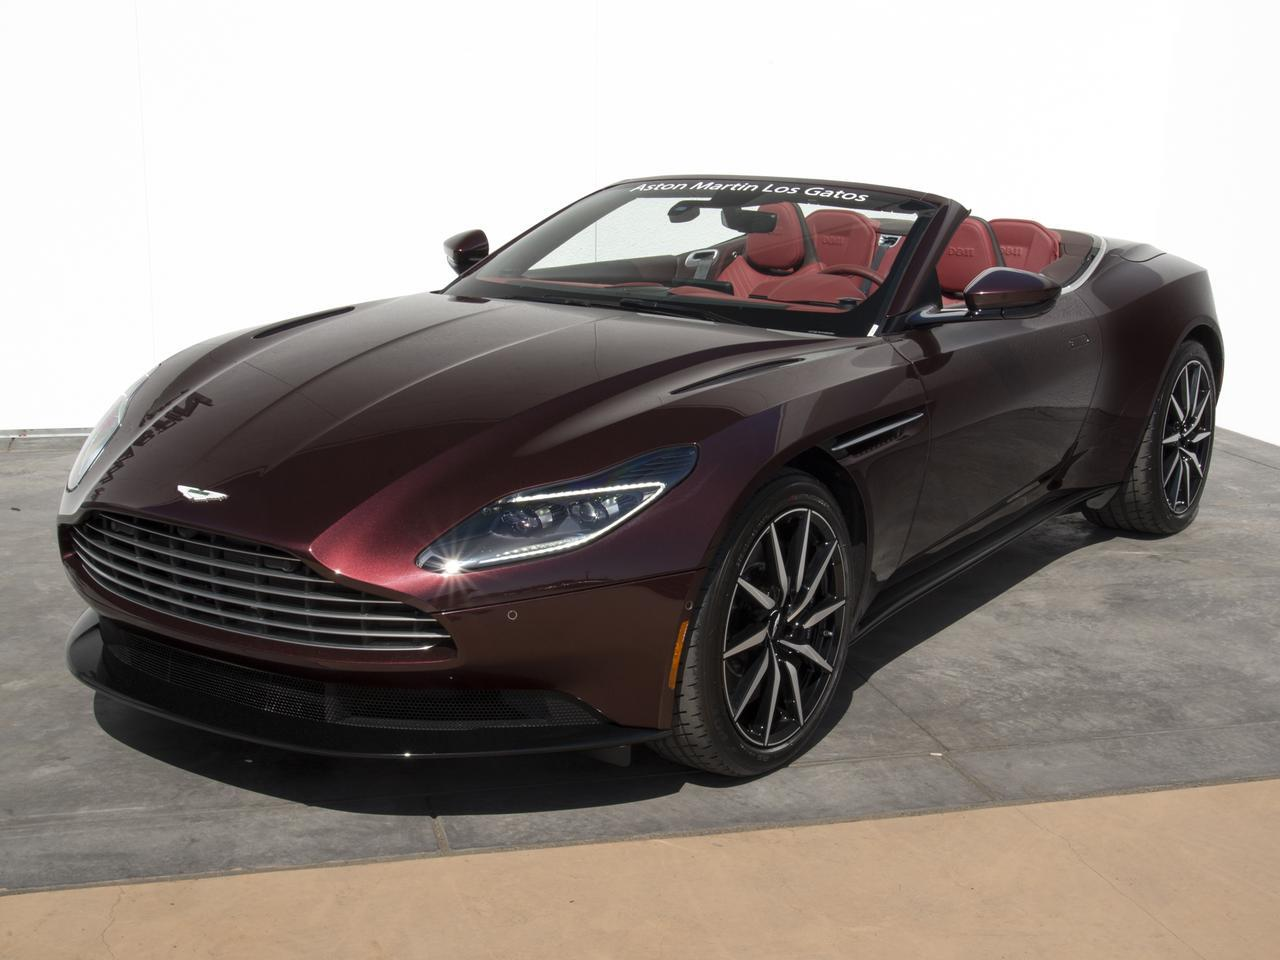 New Aston Martin DB Volante In Los Gatos CA - Los gatos aston martin